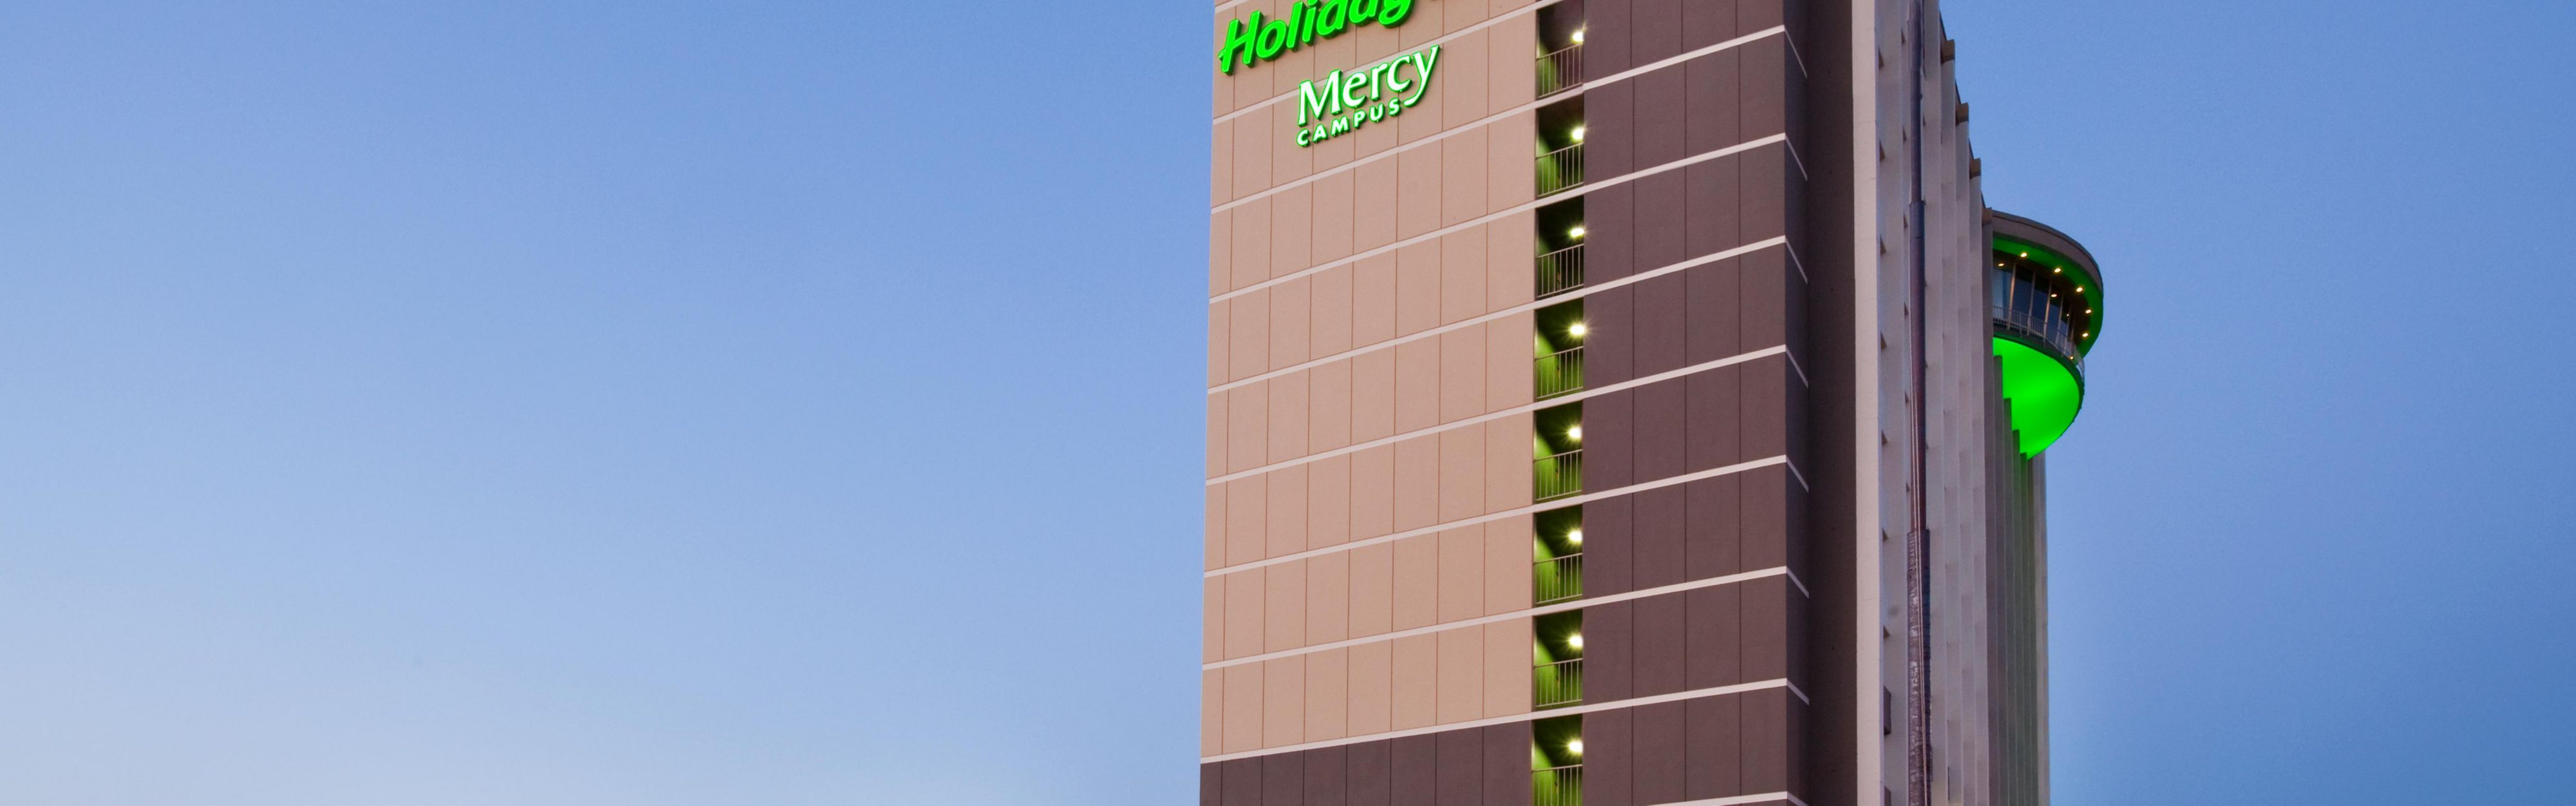 Holiday Inn Des Moines DTWN - Mercy Area image 0